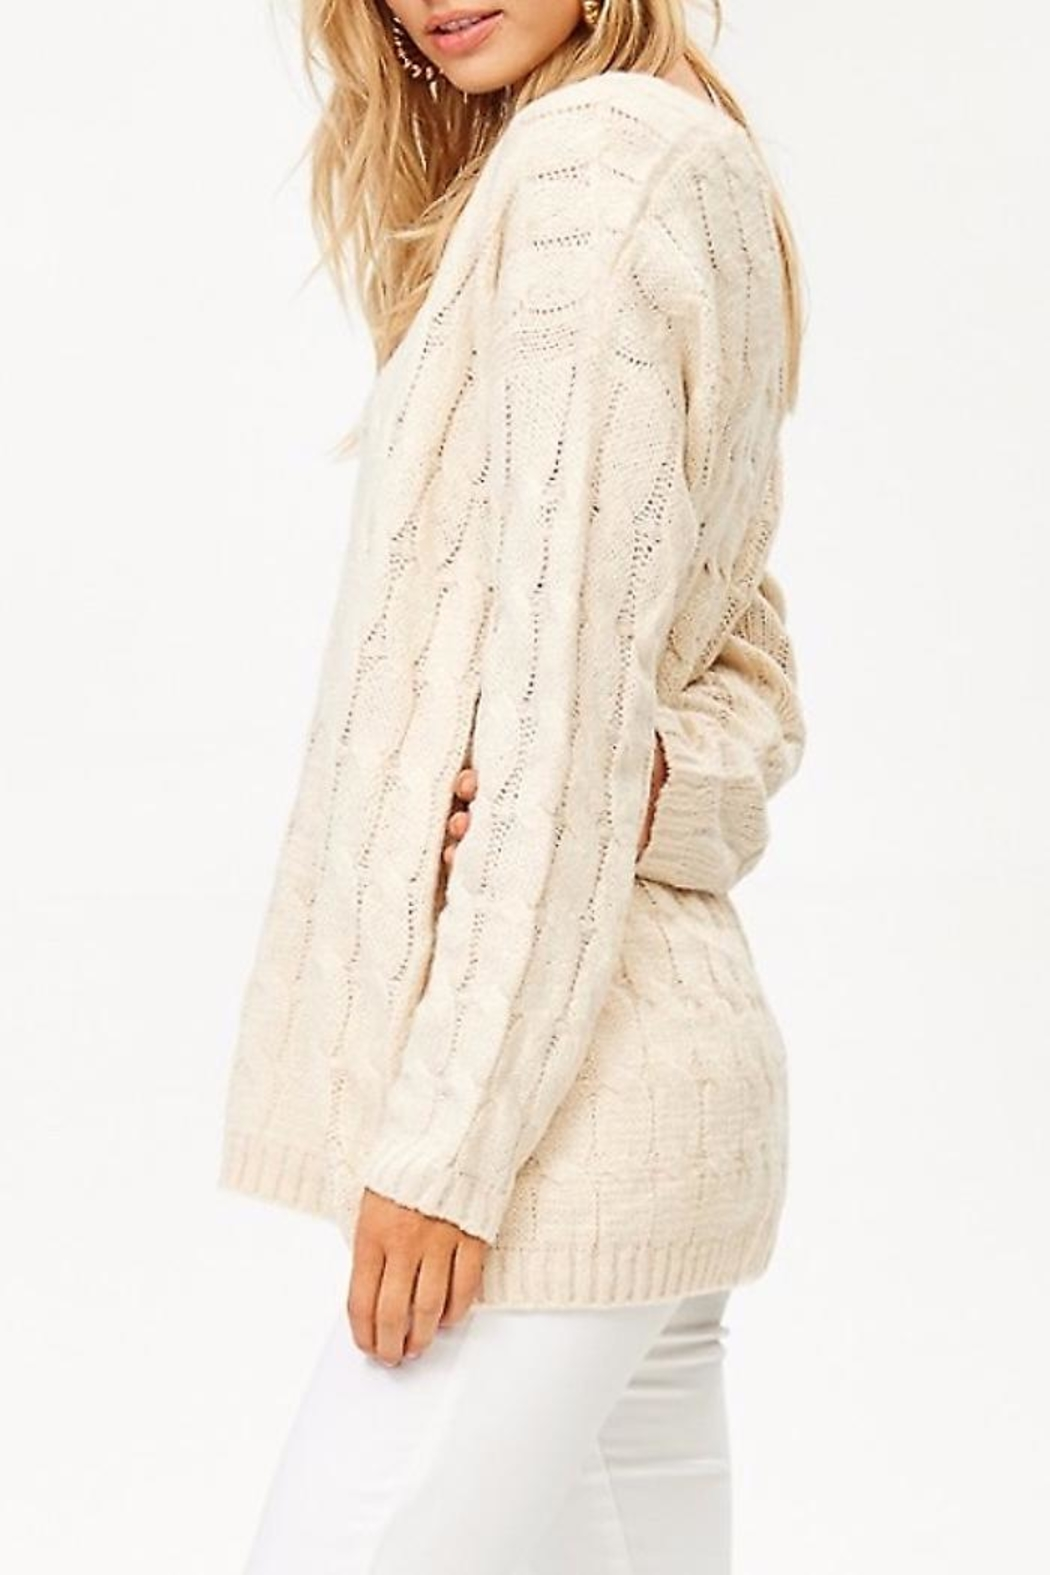 People Outfitter v-Neck Knit Sweater - Front Full Image